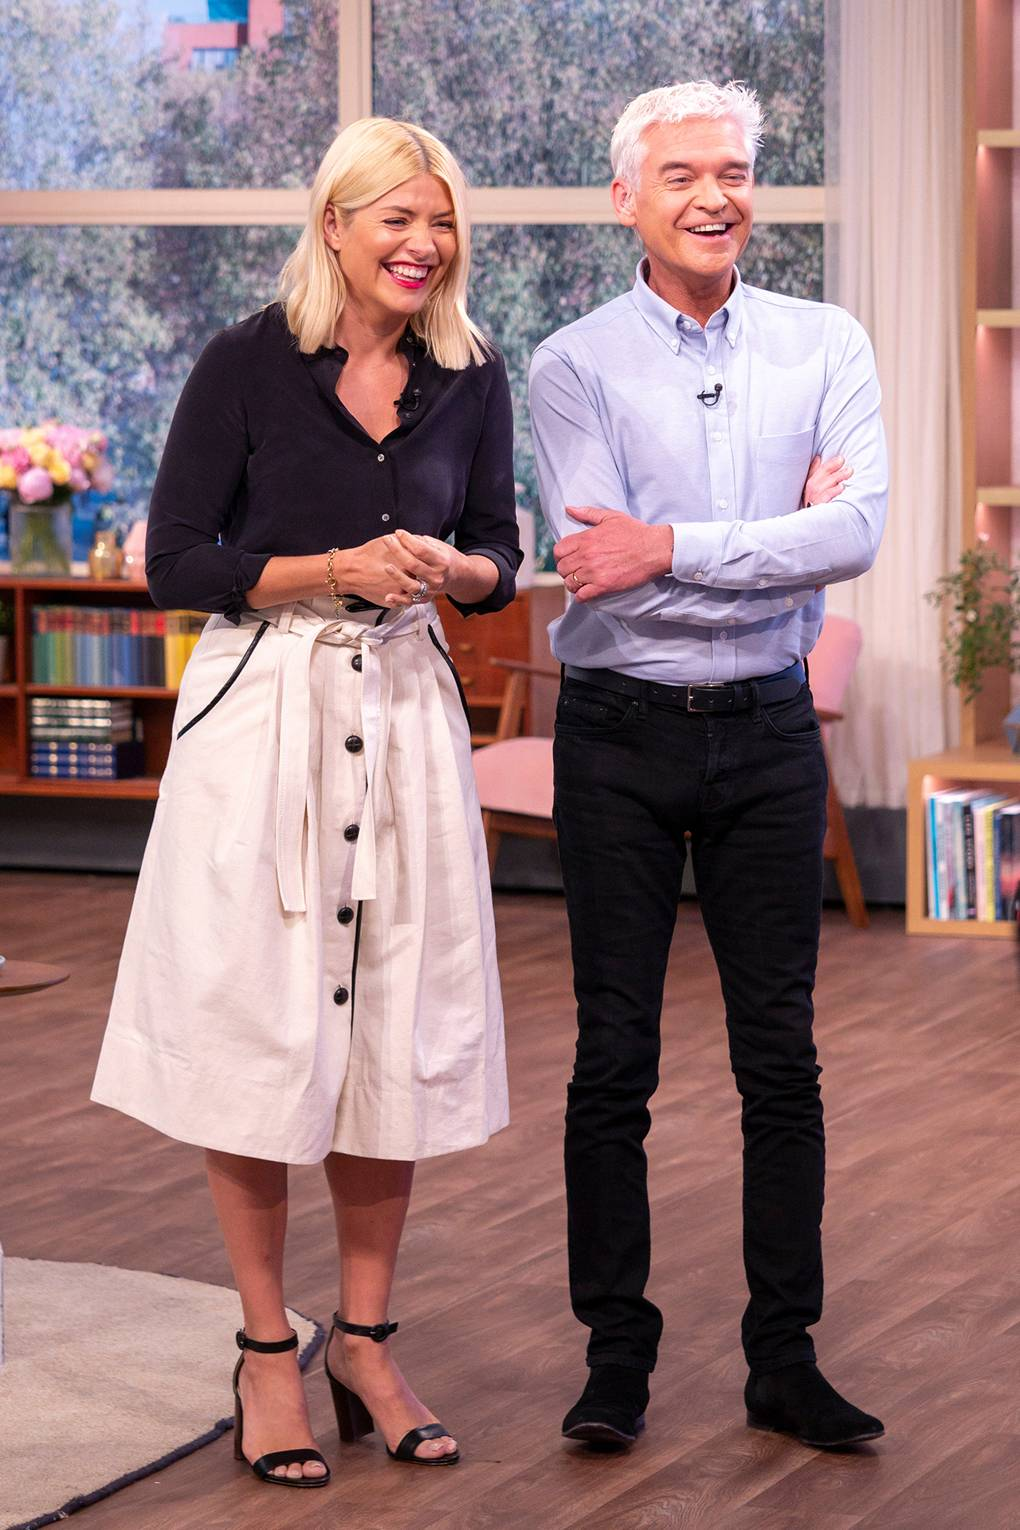 f7fda4c5cd477 Holly Willoughby Style: Her Best Outfits Ever | Glamour UK